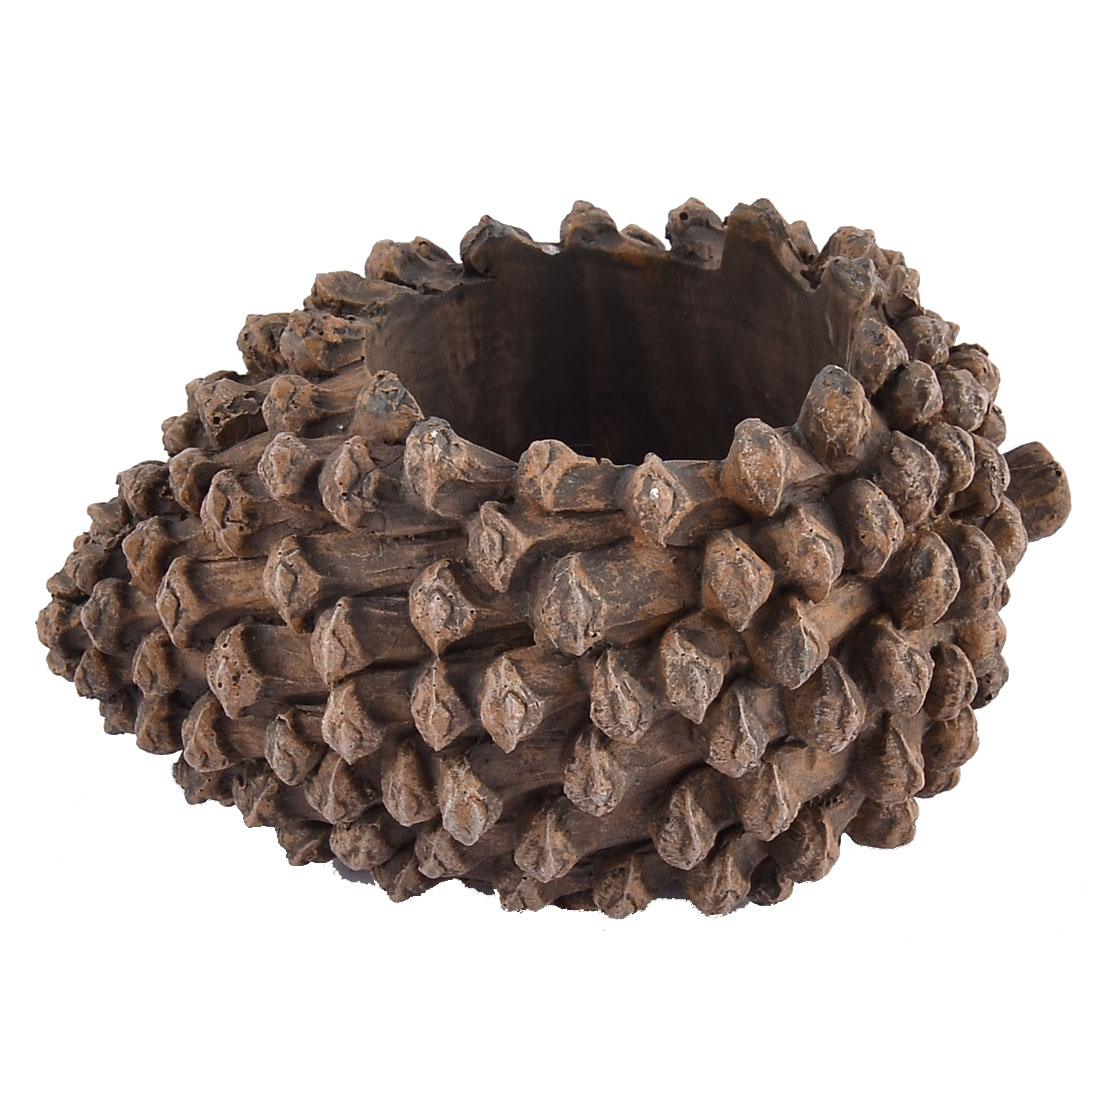 Home Garden Office Resin Pinecone Shaped Aloes Cactus Plant Flower Pot Brown